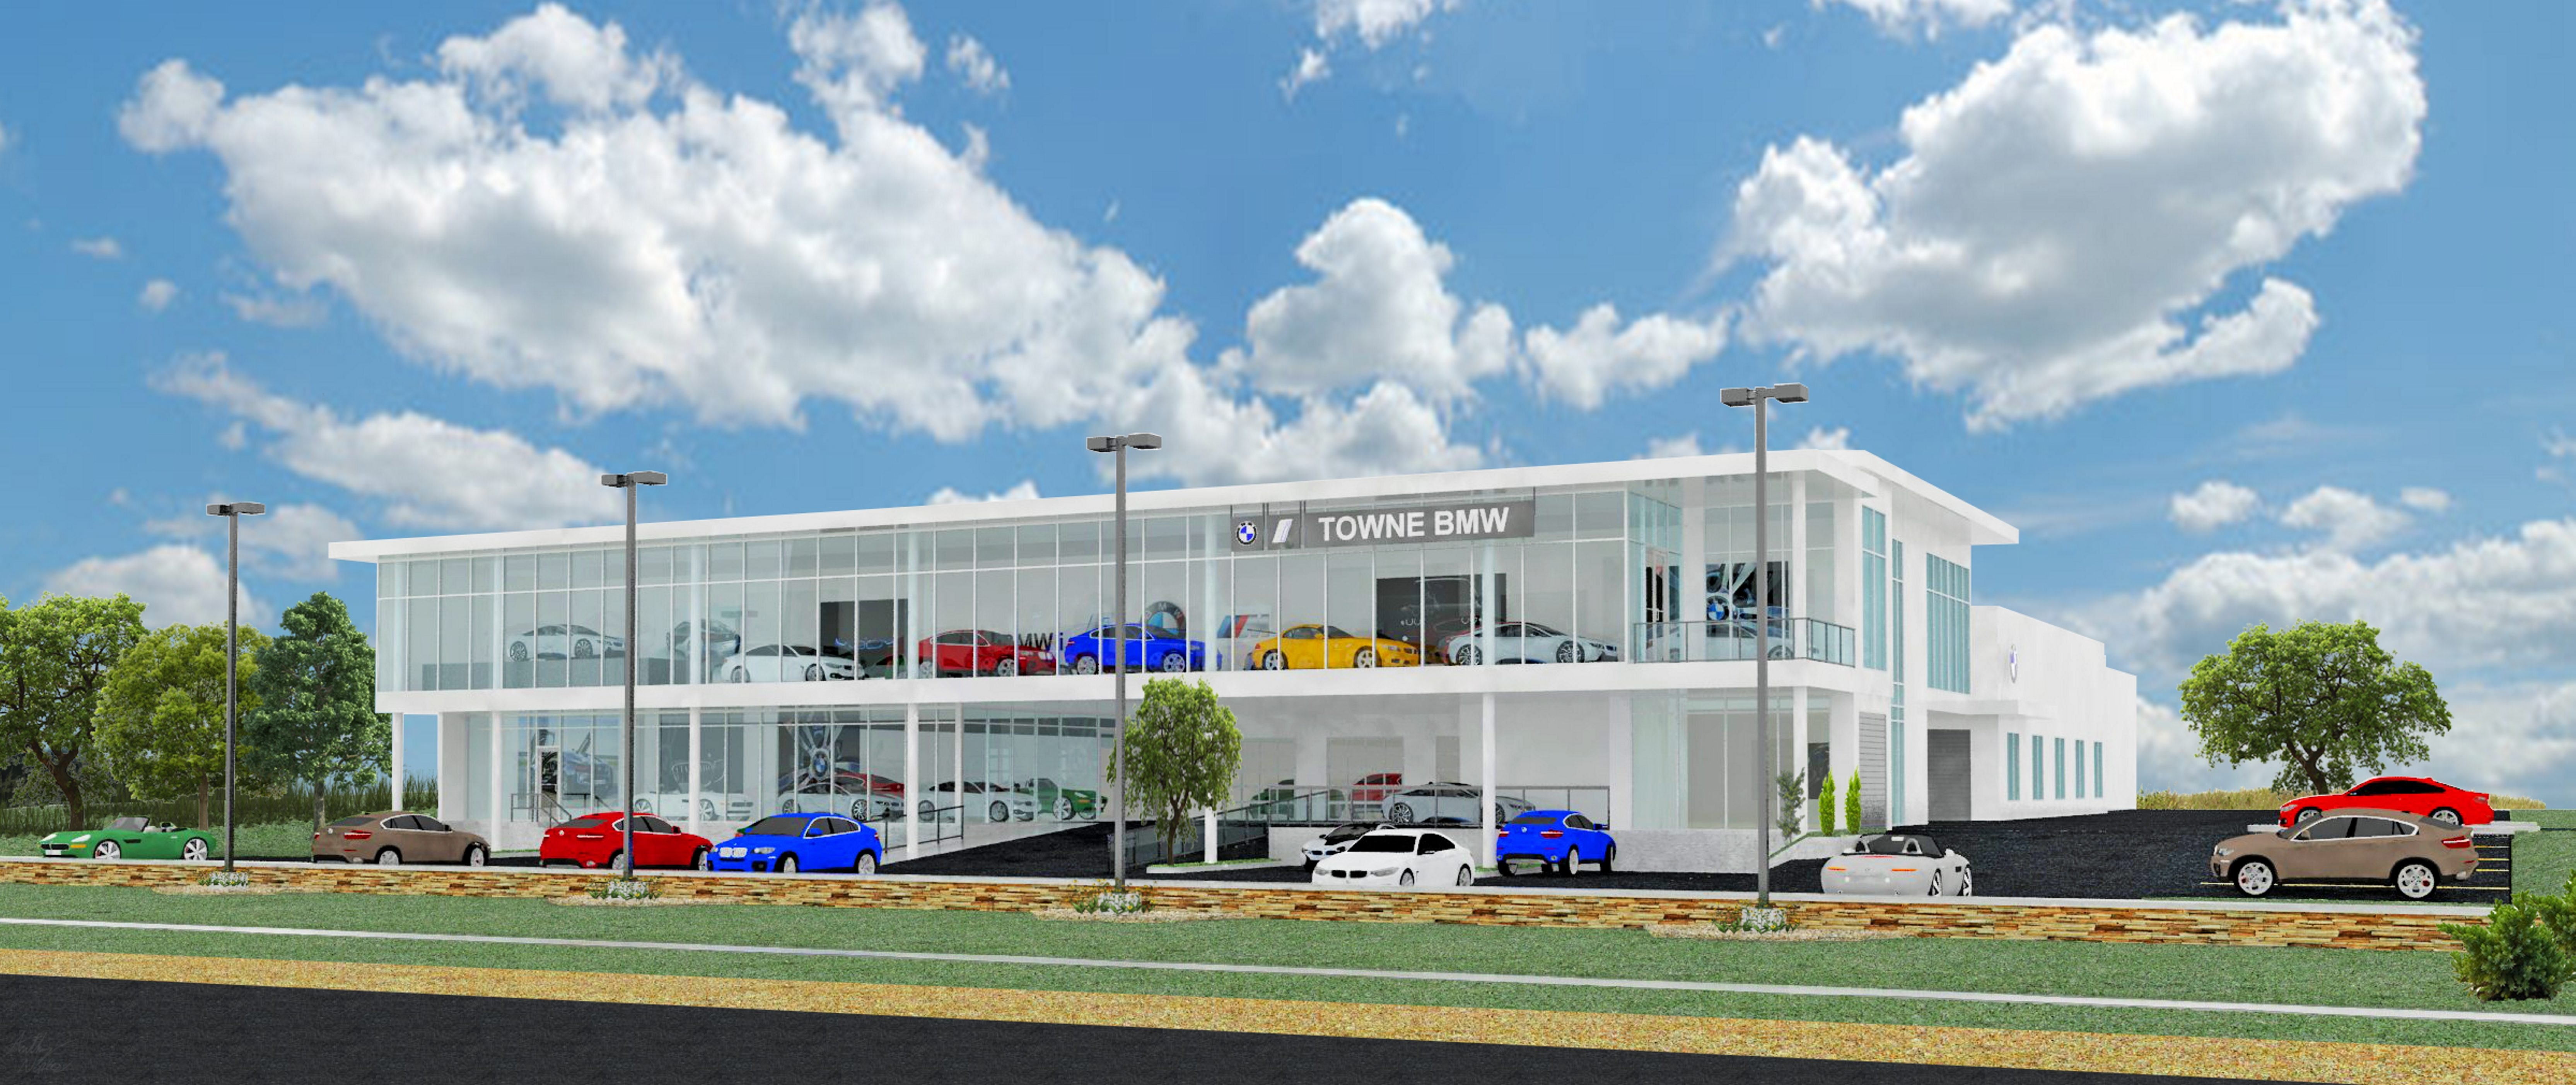 Towne BMW is building a two-story showroom in Clarence, where it will move its motorcycle showroom when completed. Until then, Towne will sell motorcycles in its used-car showroom.